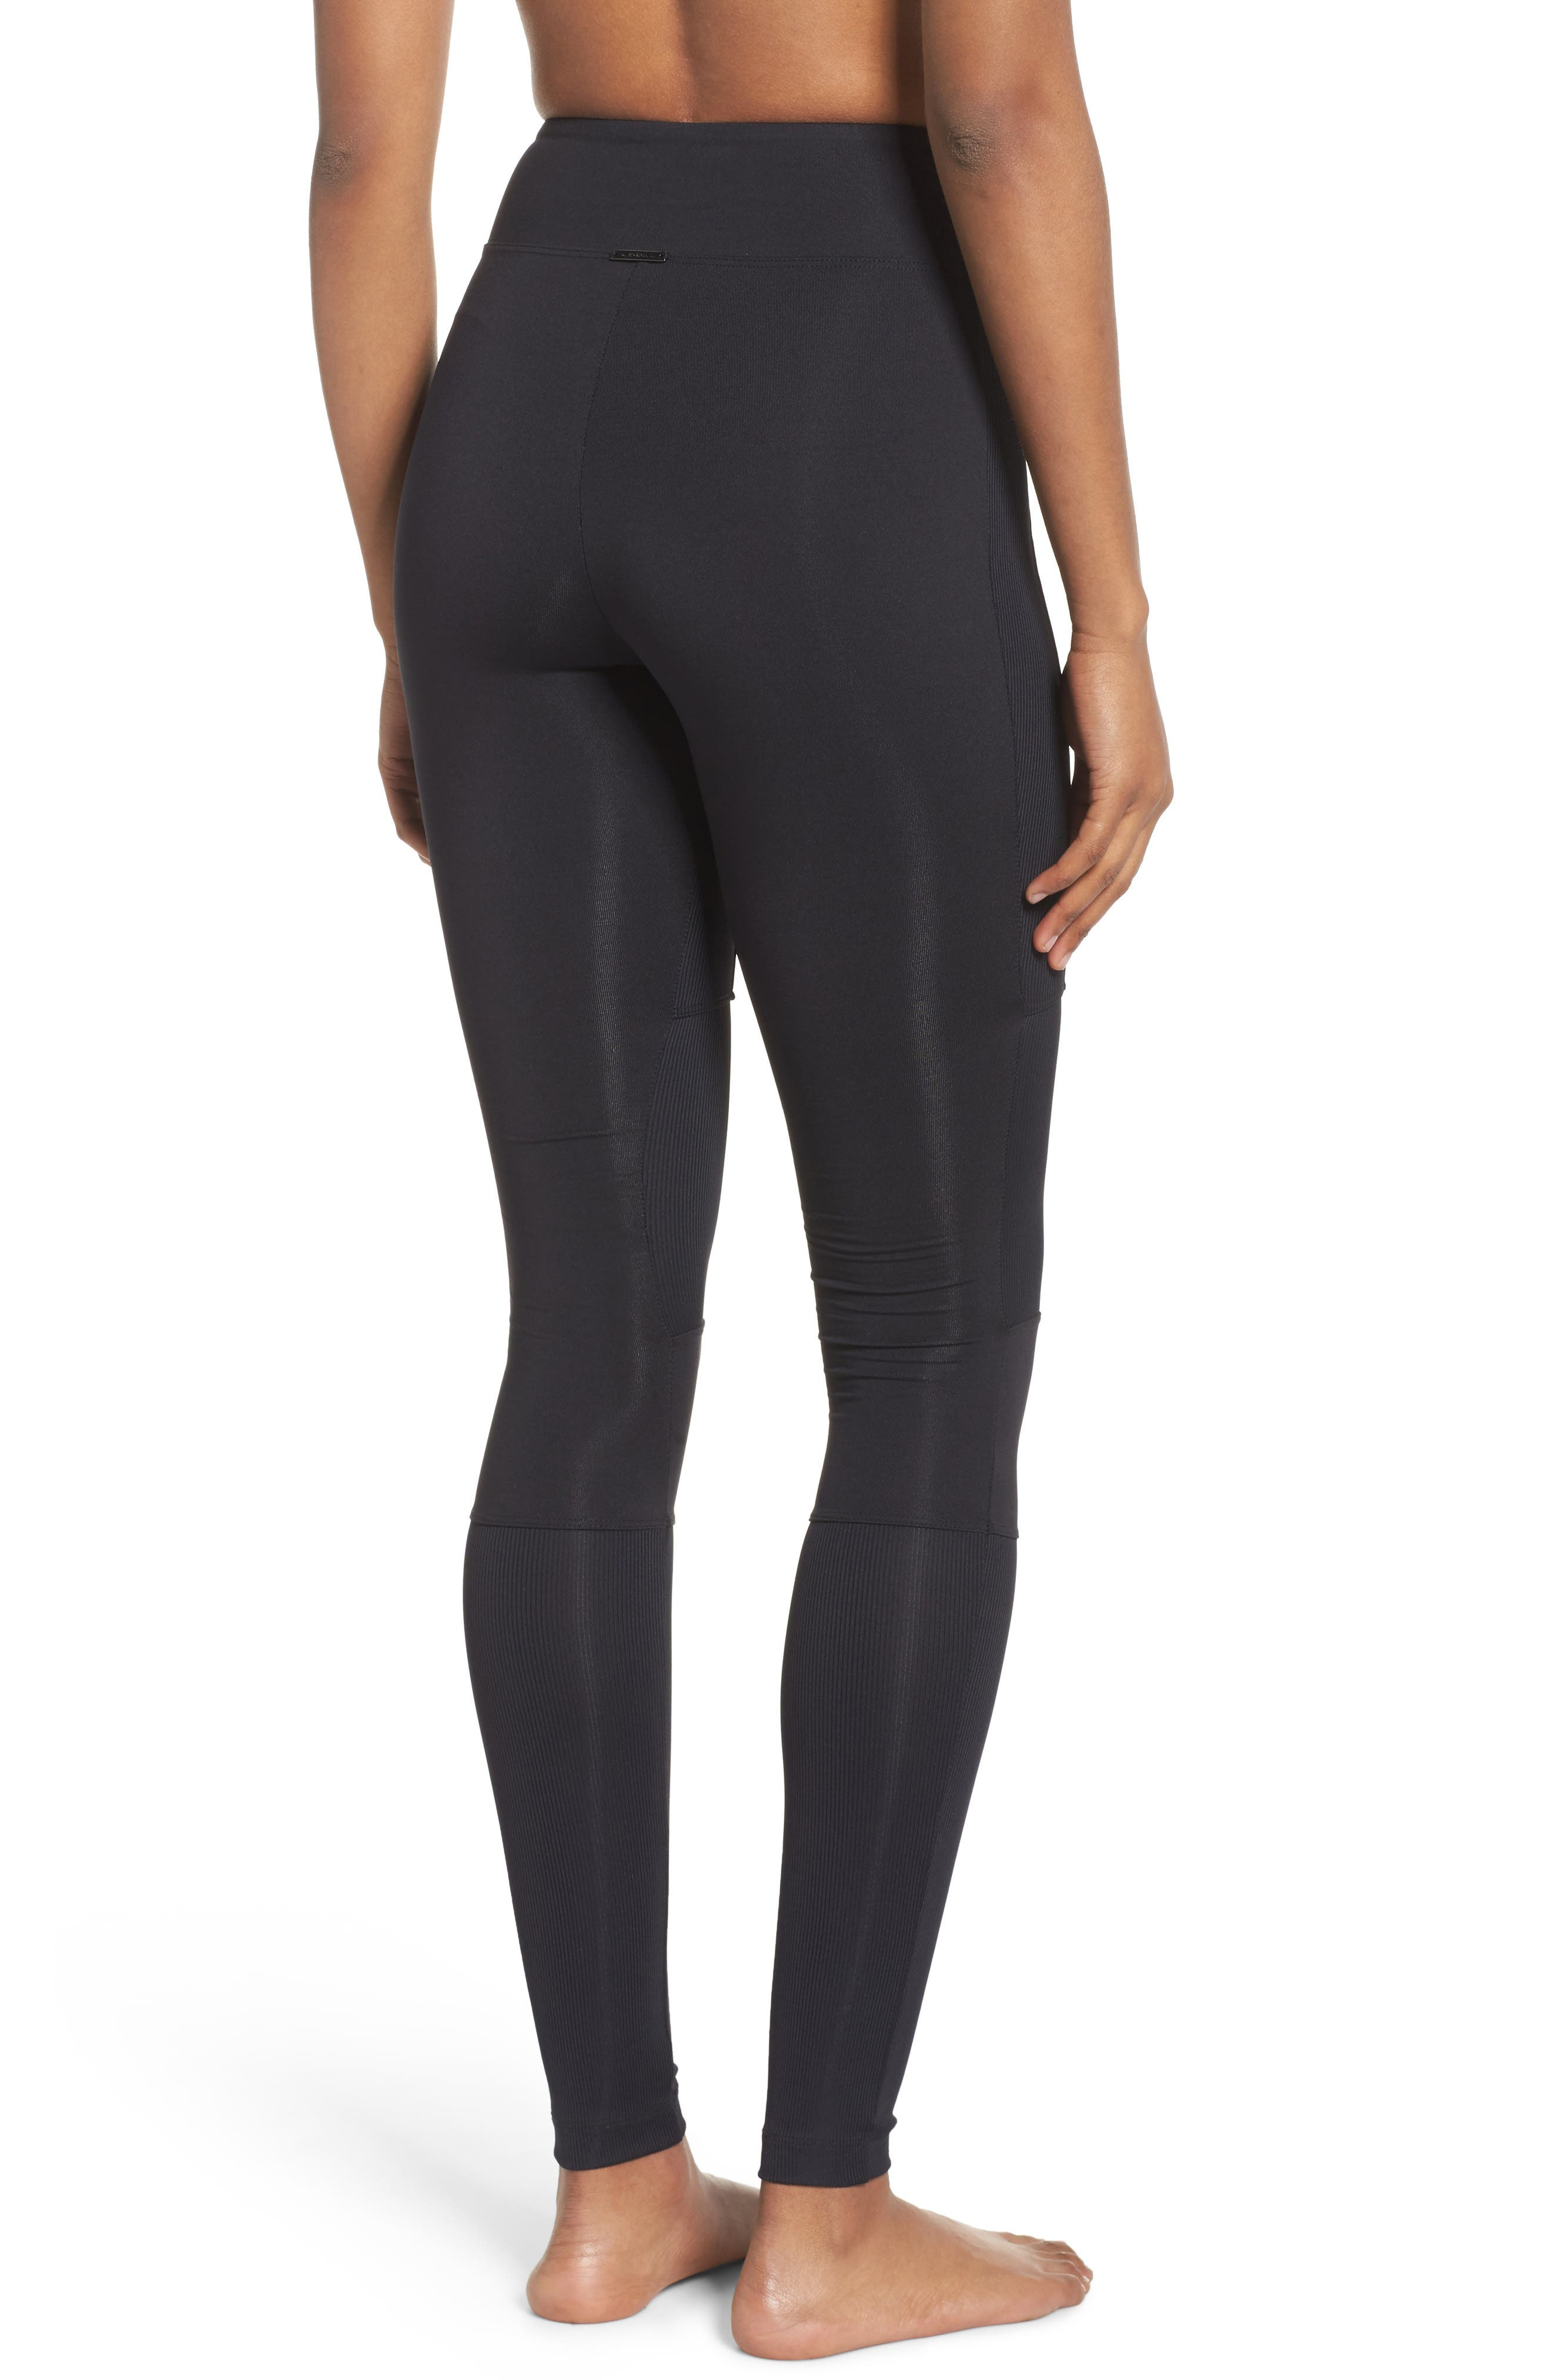 Rappel High Waist Leggings,                             Alternate thumbnail 2, color,                             001